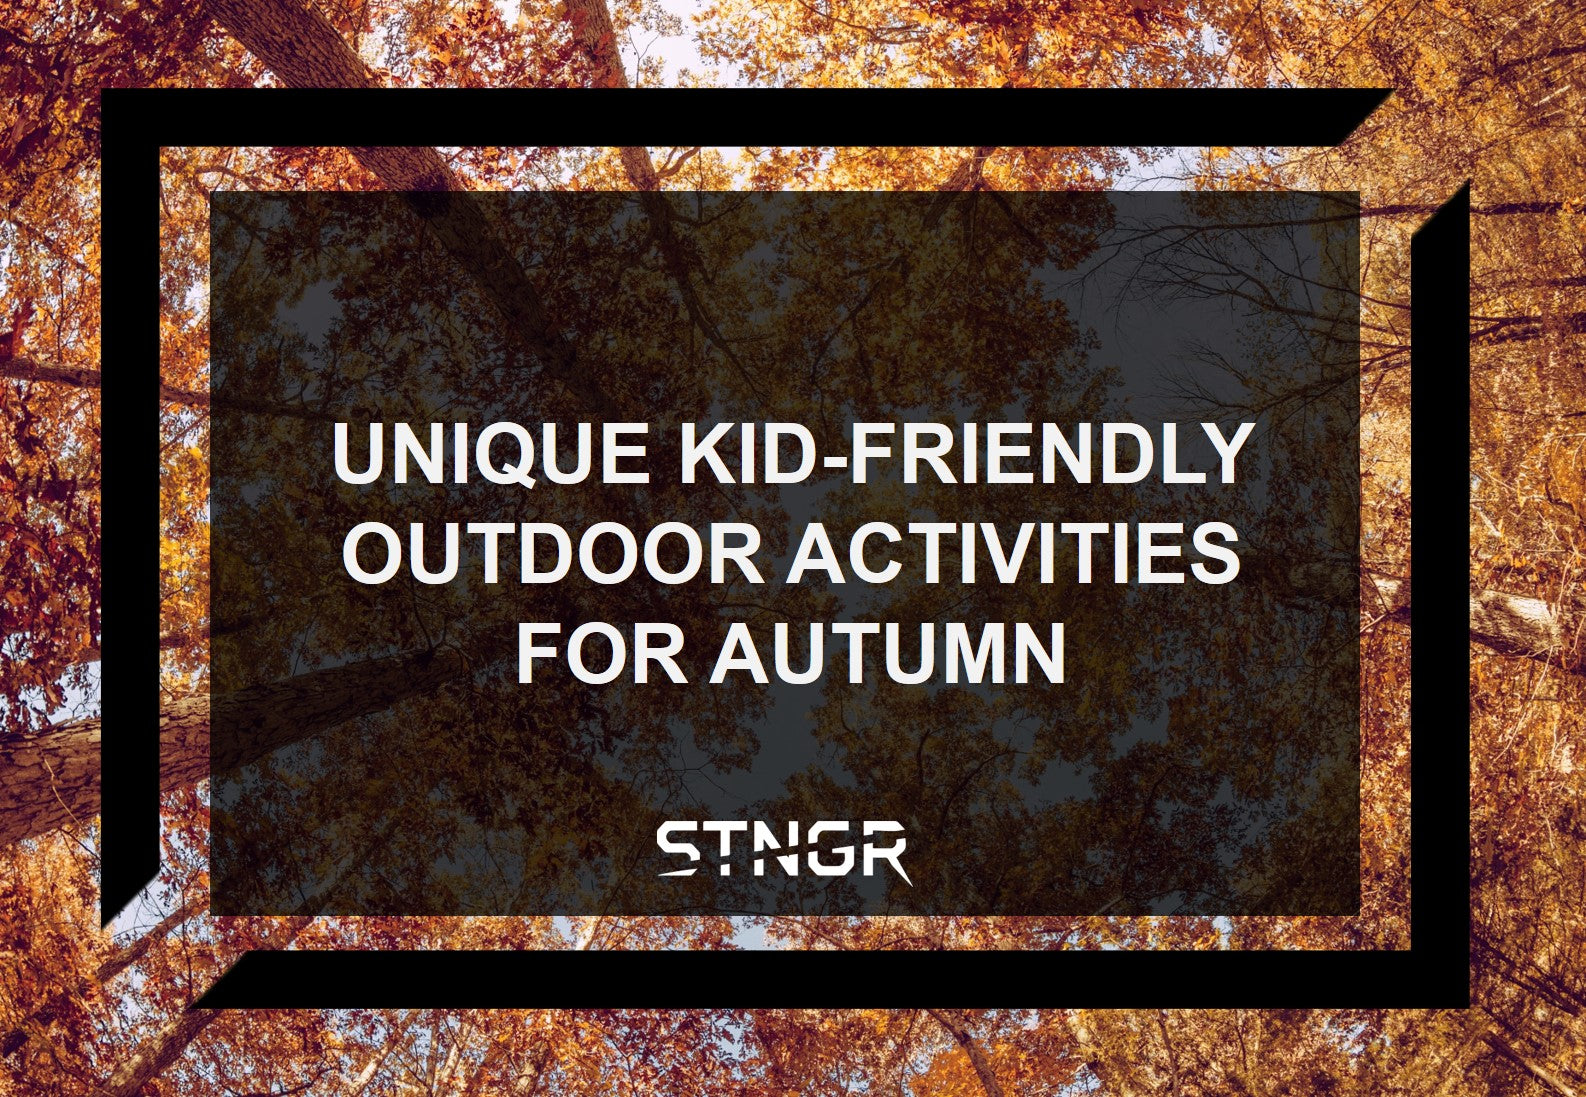 Unique Kid-Friendly Outdoor Activities For Autumn